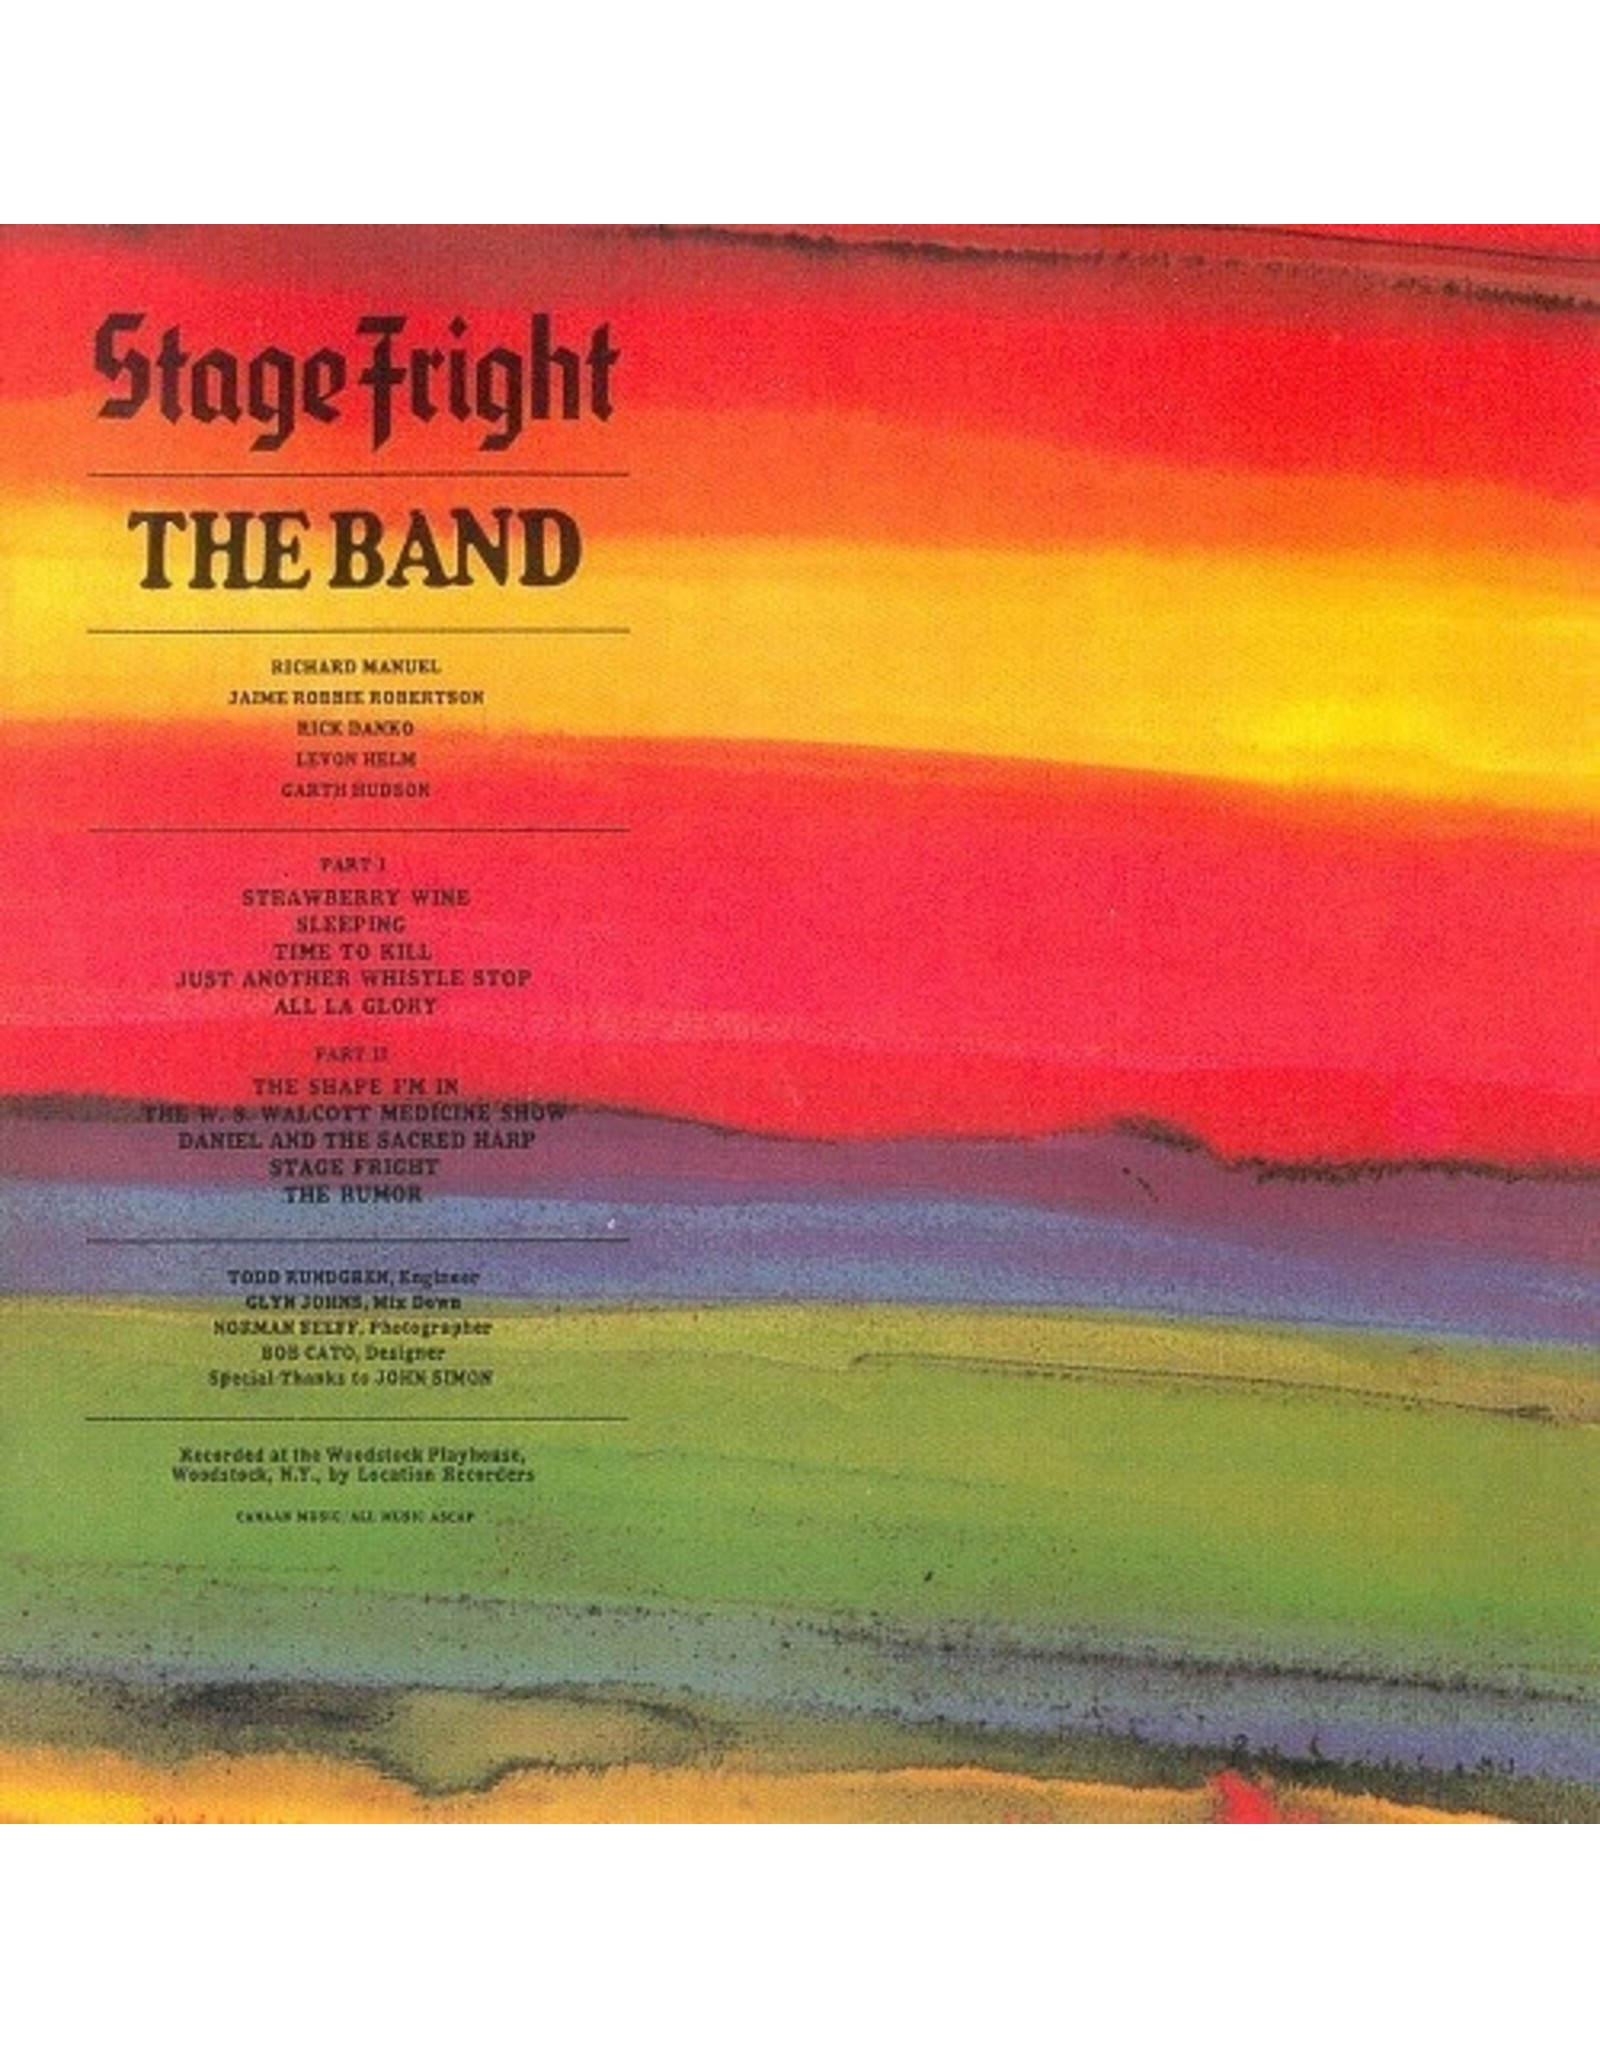 New Vinyl The Band - Stage Fright LP